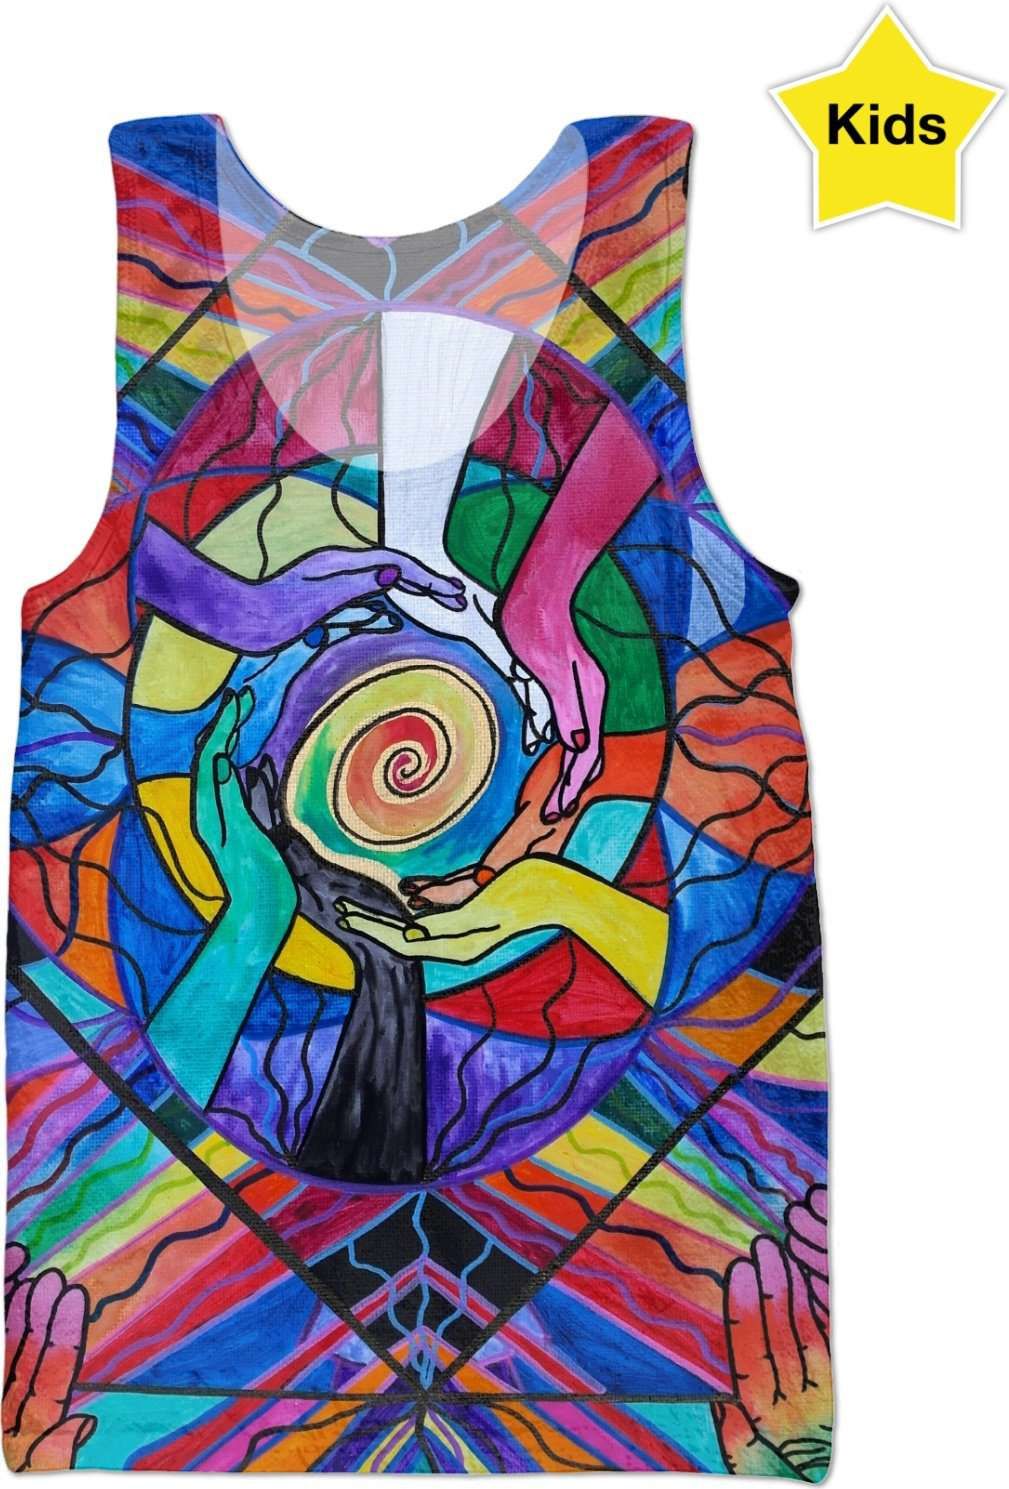 Come Together - Kids Tank Top